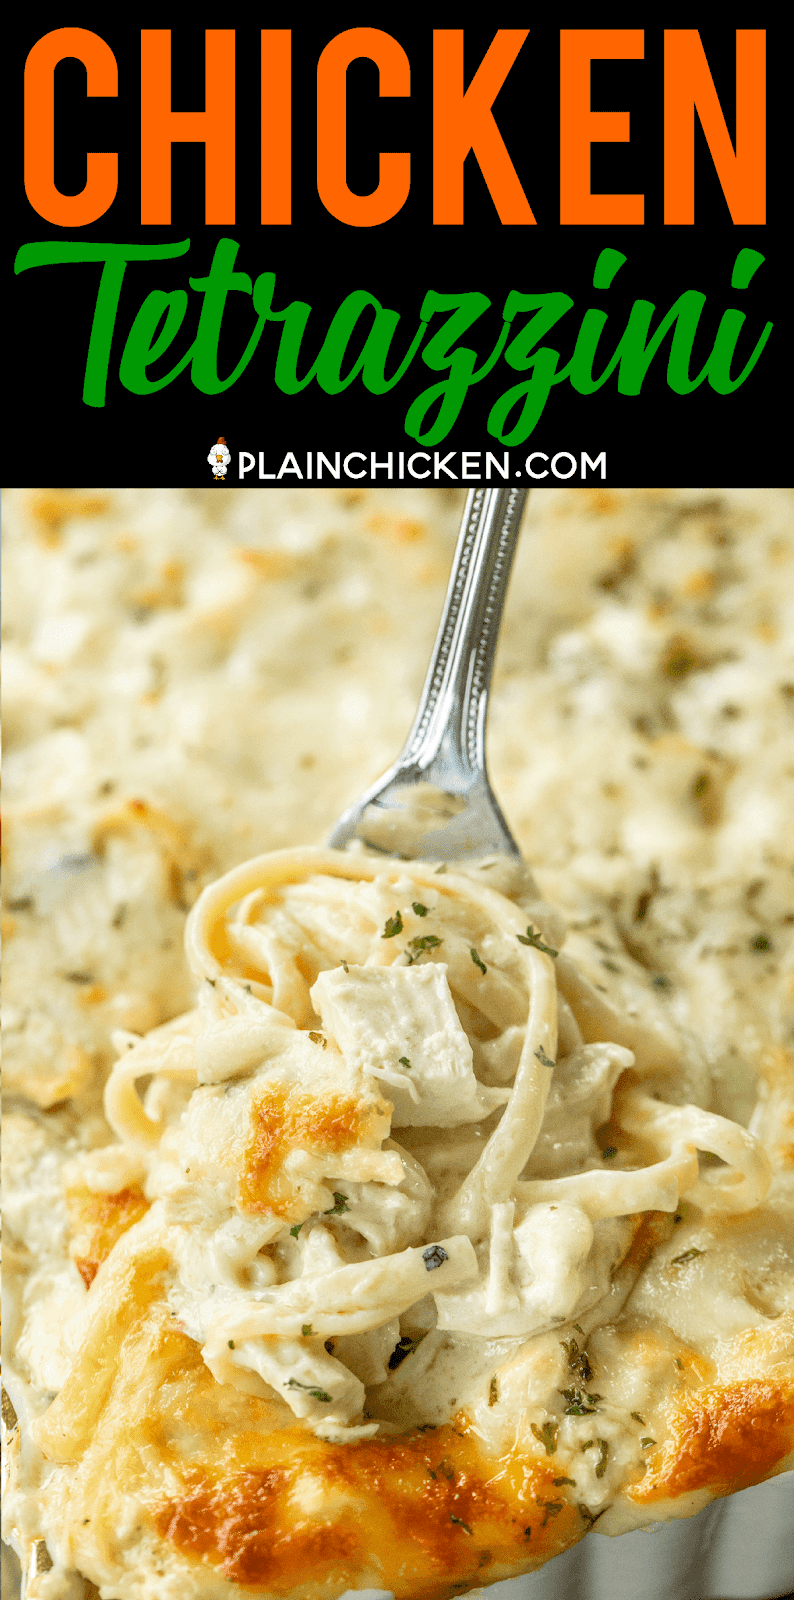 Chicken Tetrazzini - super delicious make ahead casserole! Makes a great freezer meal!! Chicken,linguine, cream of chicken soup, cream of mushroom soup, sour cream, butter, chicken broth, salt, pepper, garlic, parmesan cheese, mozzarella cheese. SO creamy and delicious. Made this for dinner and everyone cleaned their plate! Even our picky eaters. This is definitely going in the dinner rotation! #chicken #casserole #freezermeal #chickendinner